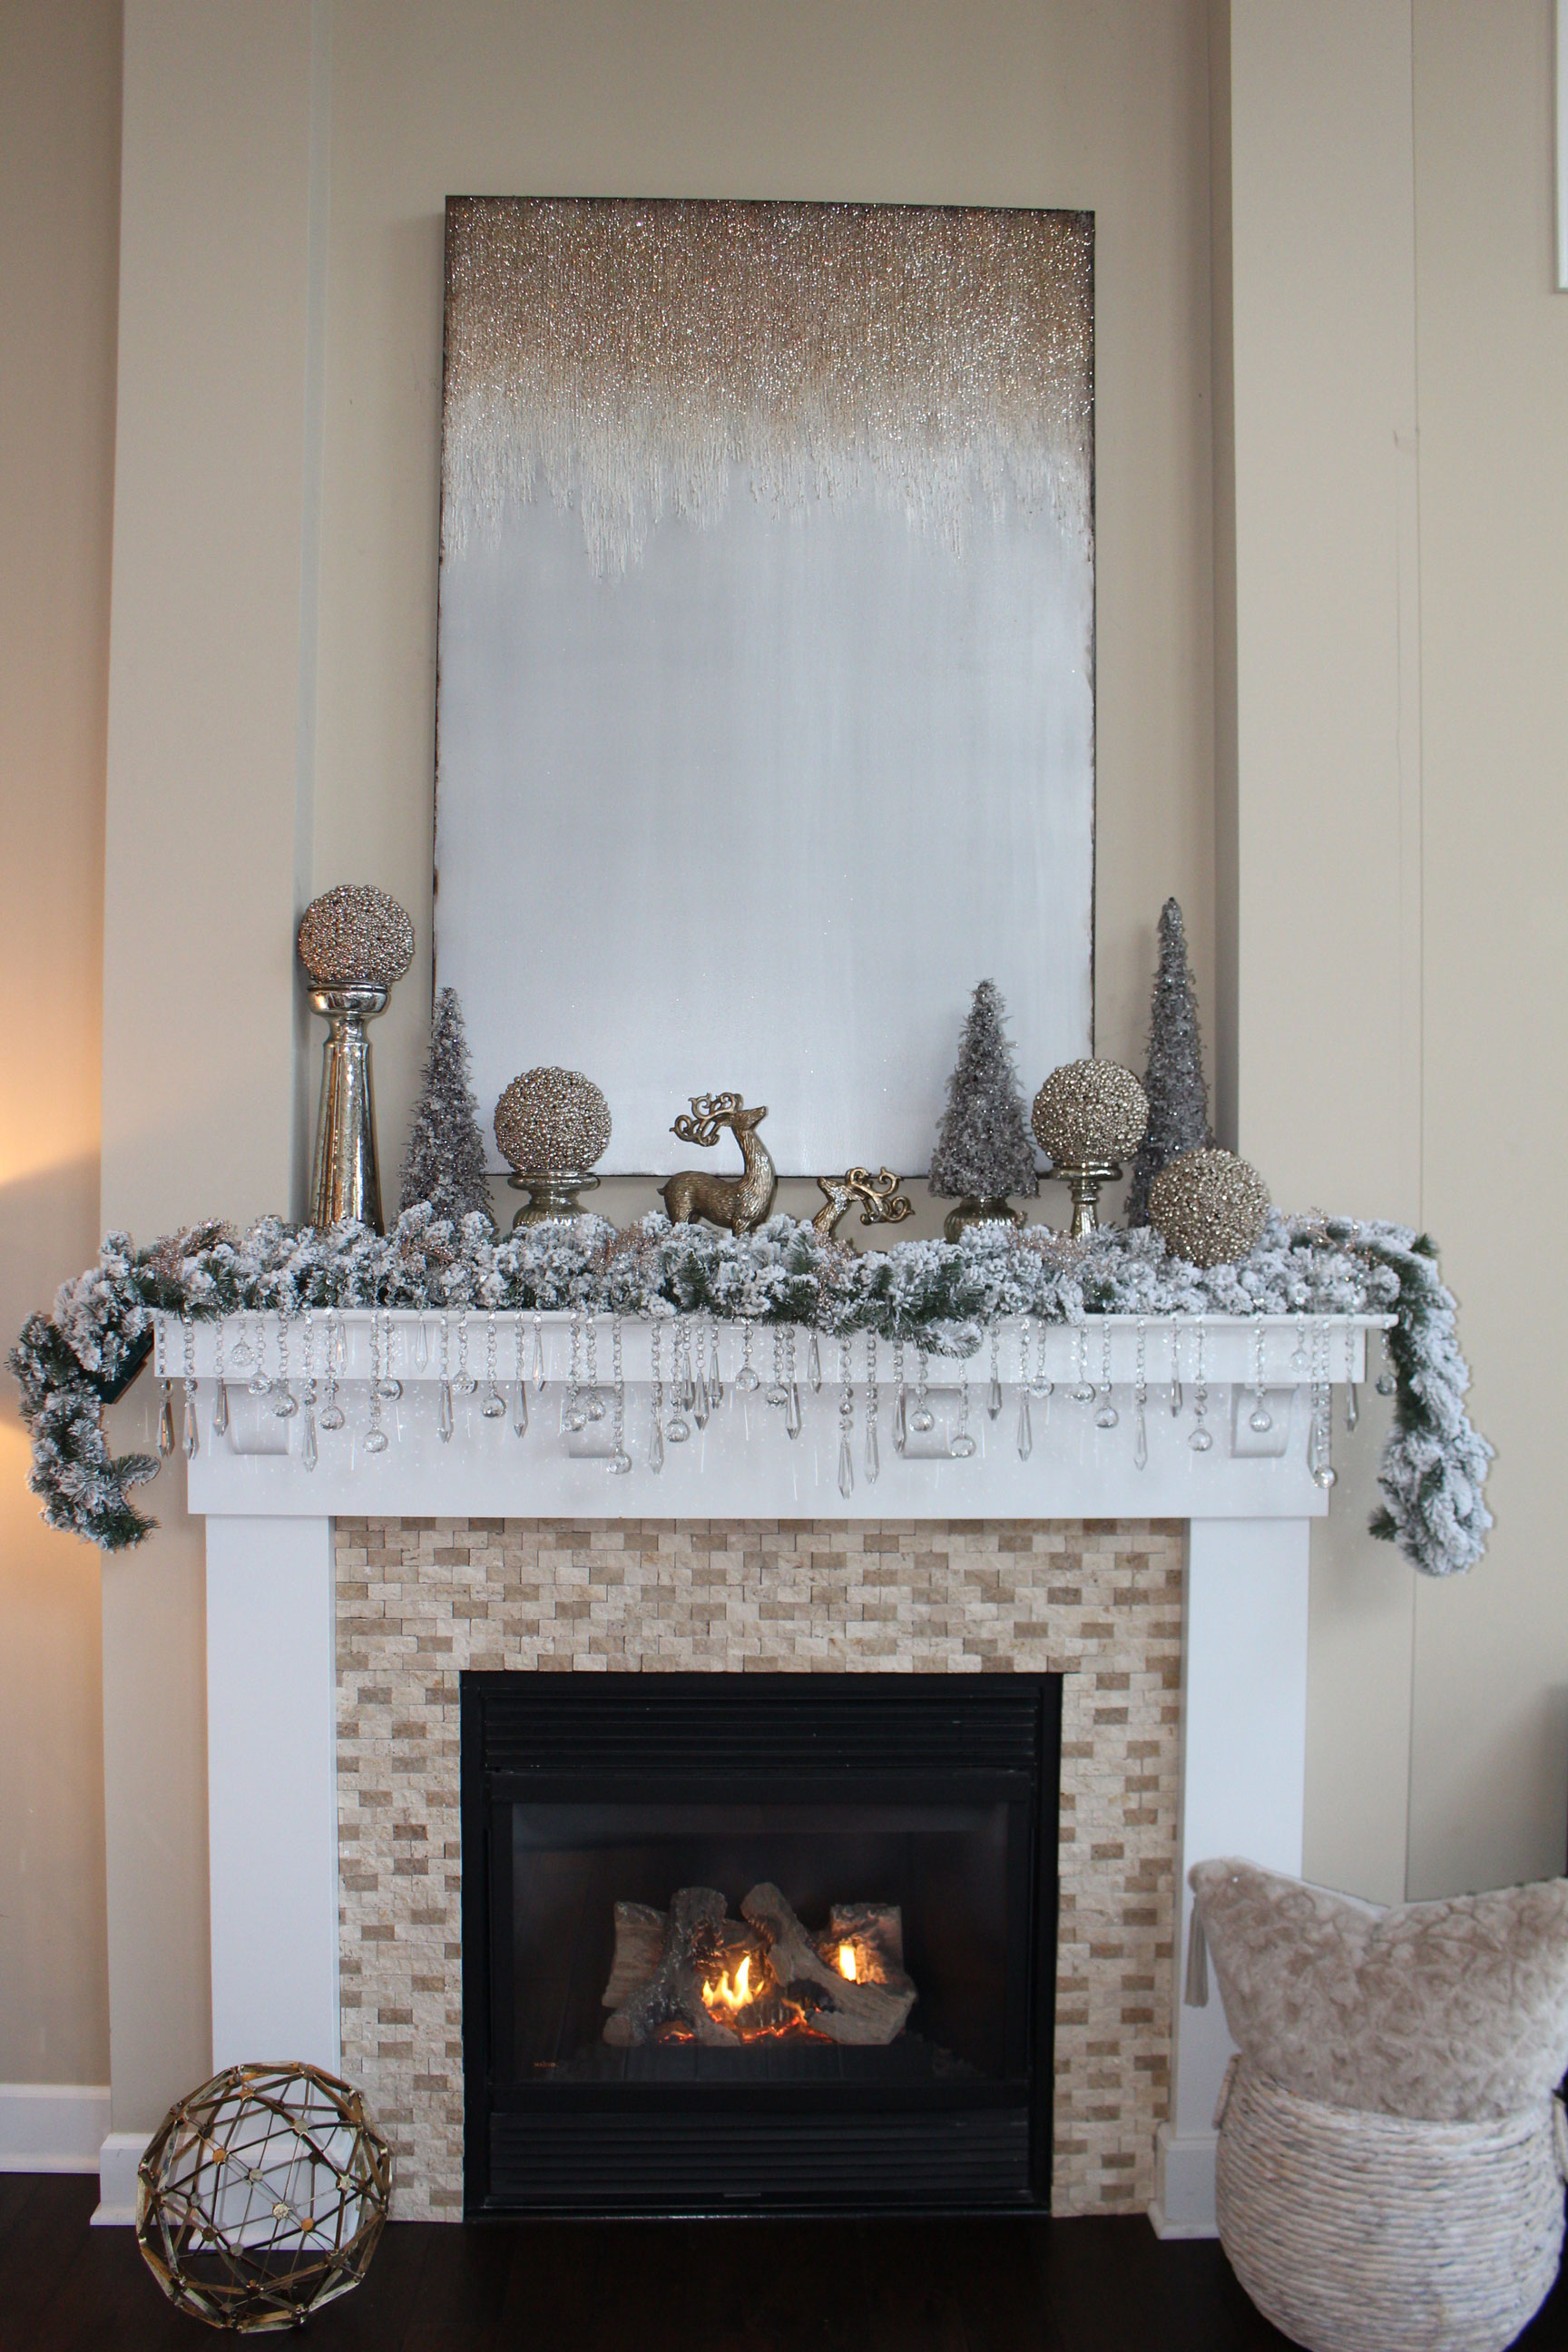 Farah Merhi's Winter Wonderland, Fireplace